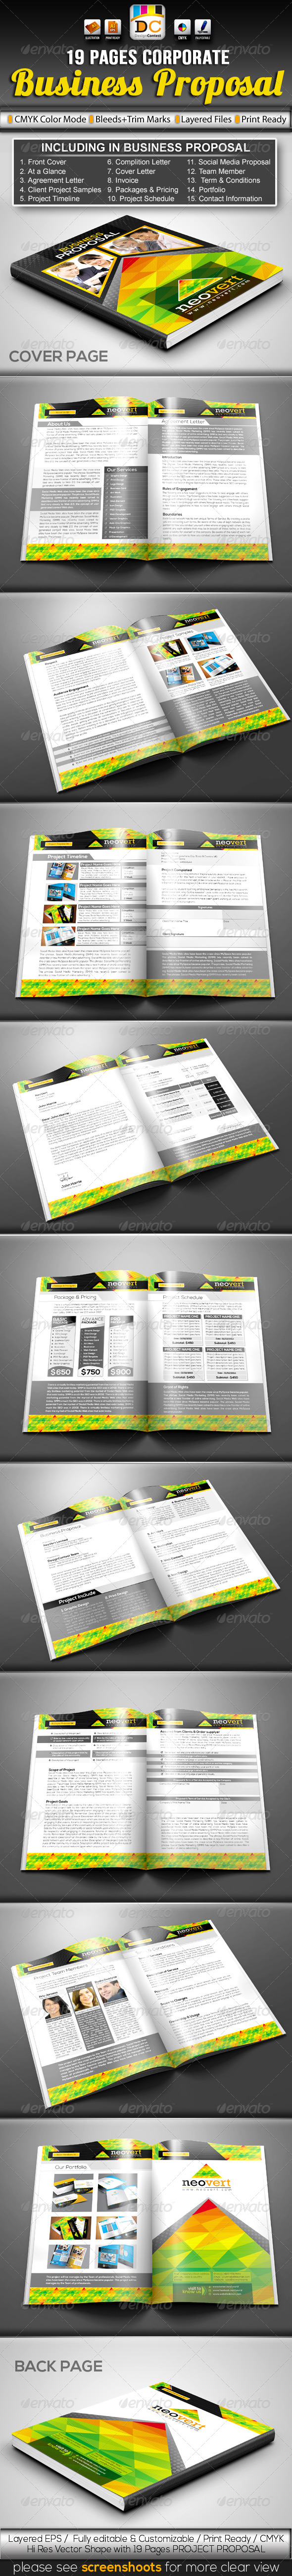 NeoVert_Corporate Business/Project Proposal - Proposals & Invoices Stationery